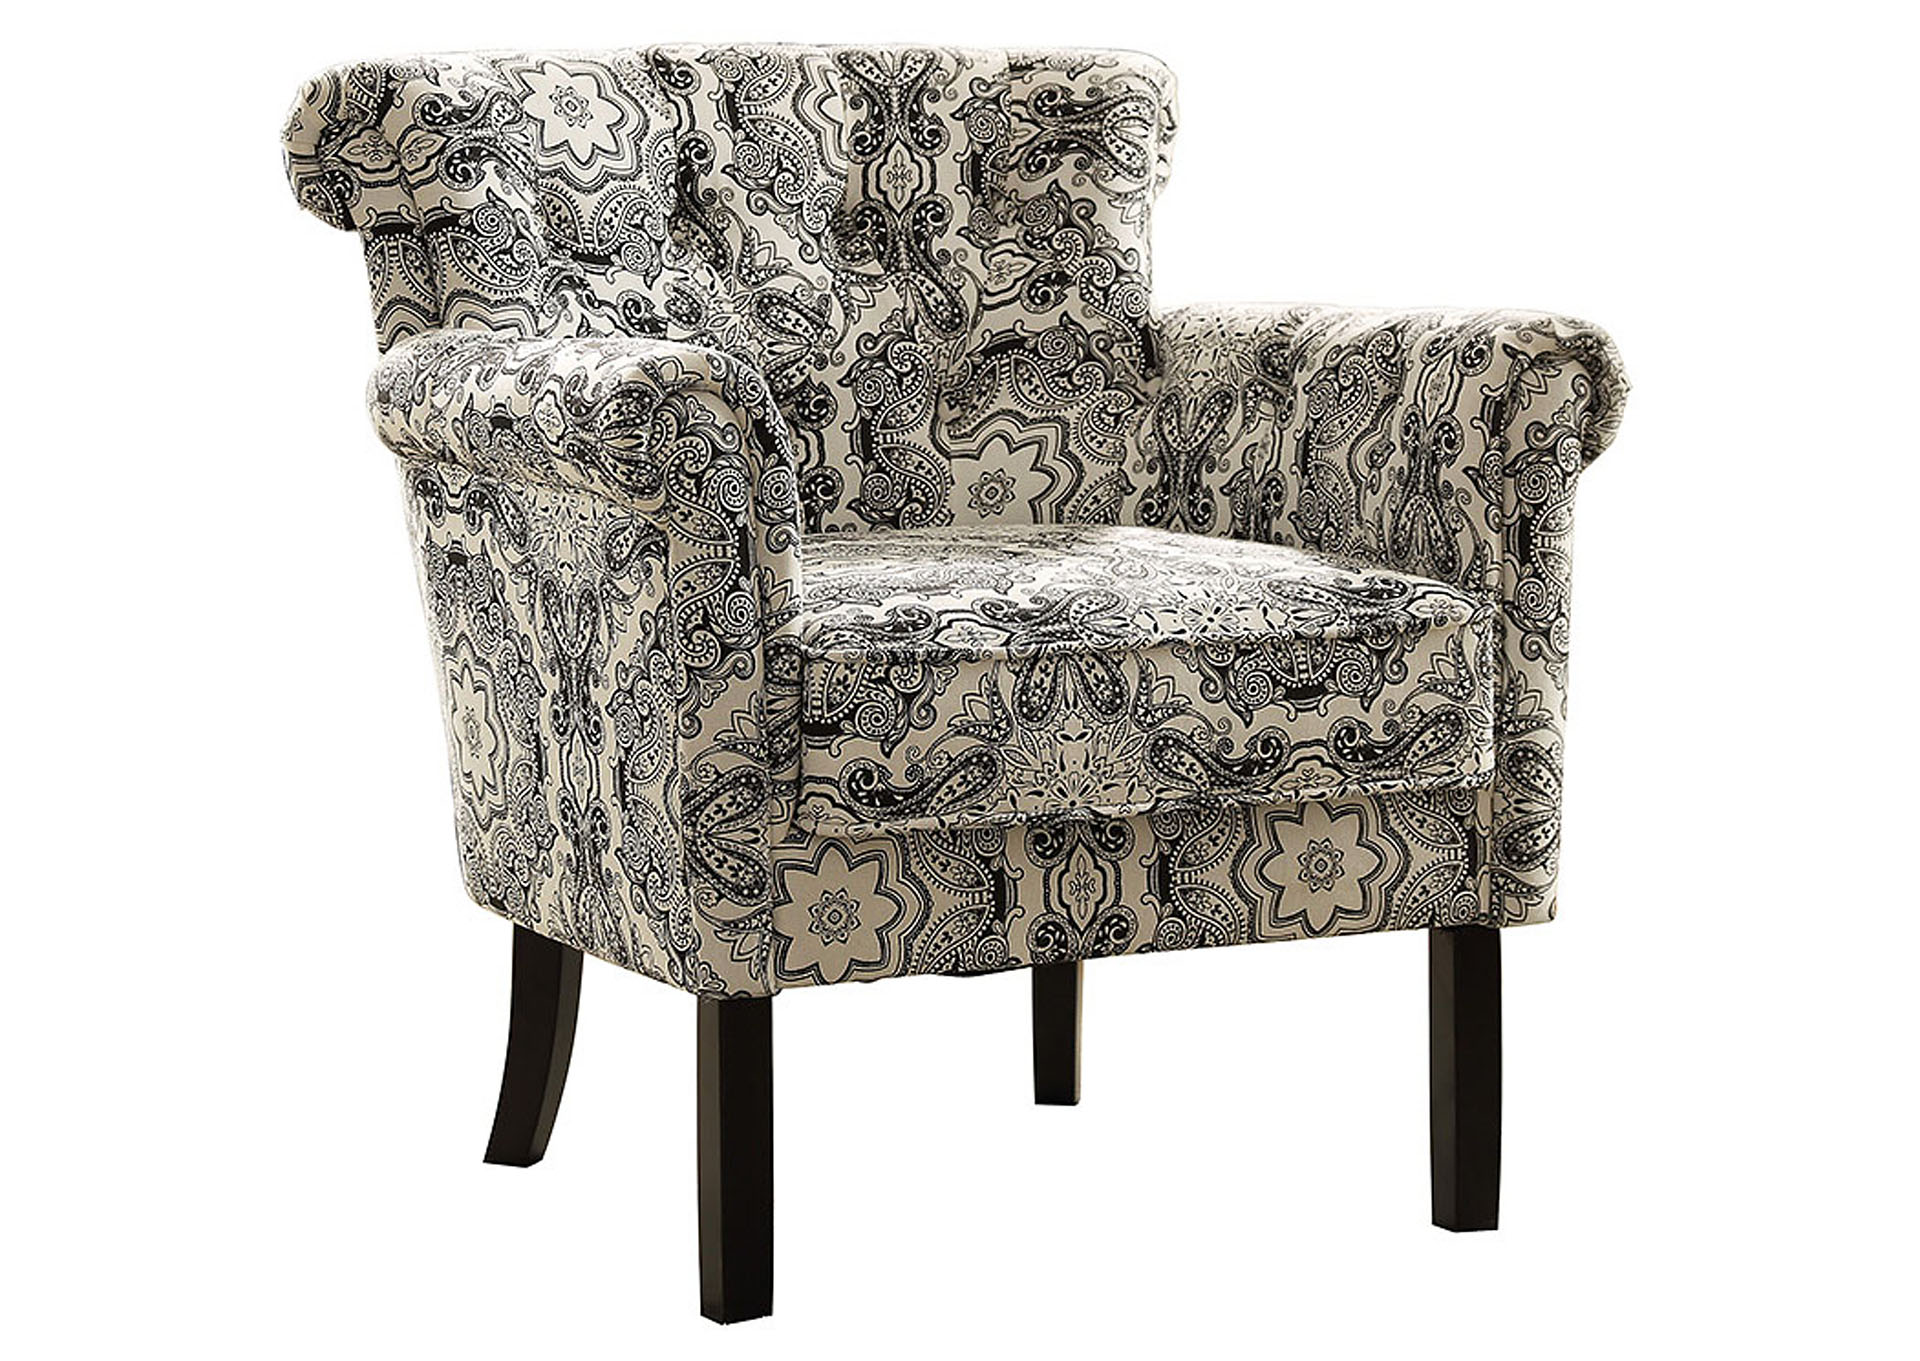 Prime Town Of Bargains Furniture Accent Chair Paisley Uwap Interior Chair Design Uwaporg